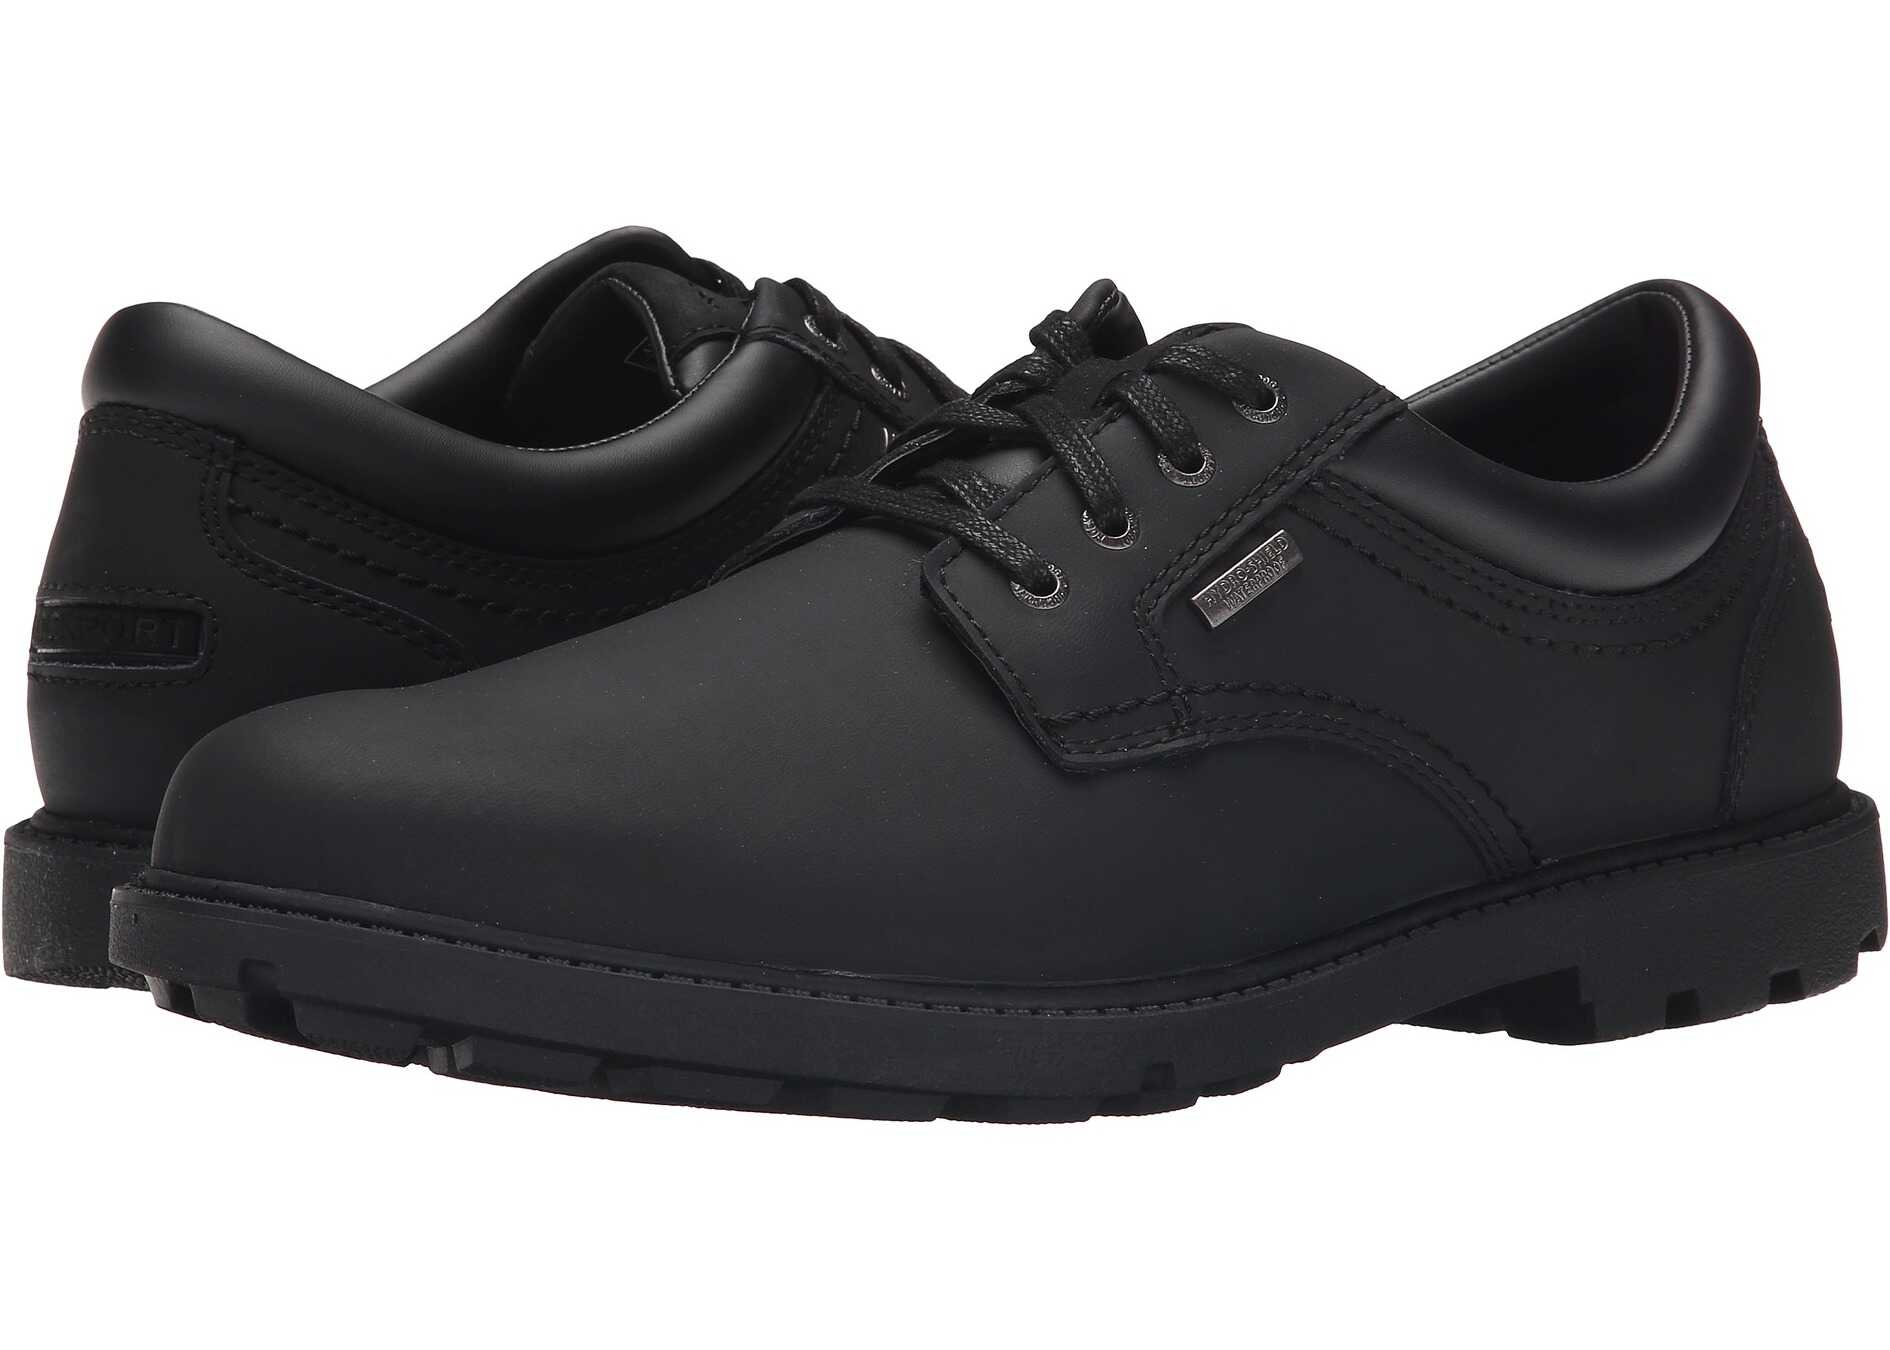 Rockport Storm Surge Water Proof Plain Toe Oxford Black